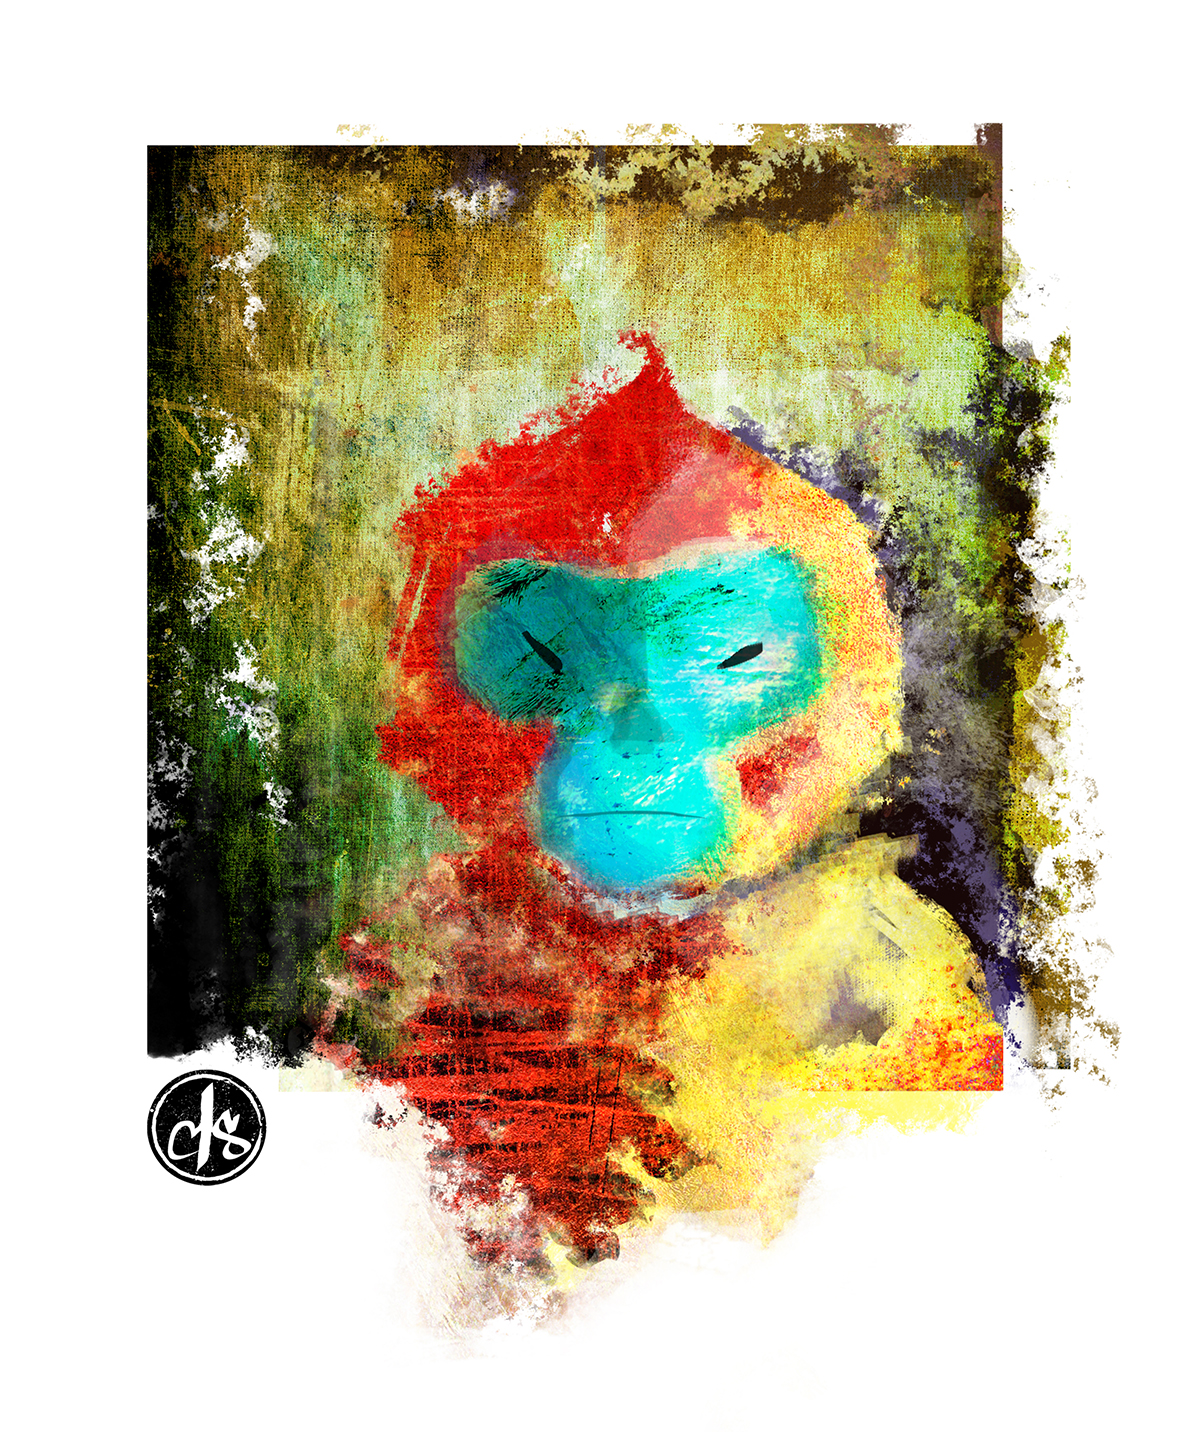 digital painting of blue faced monkey by artist Crystal Smith